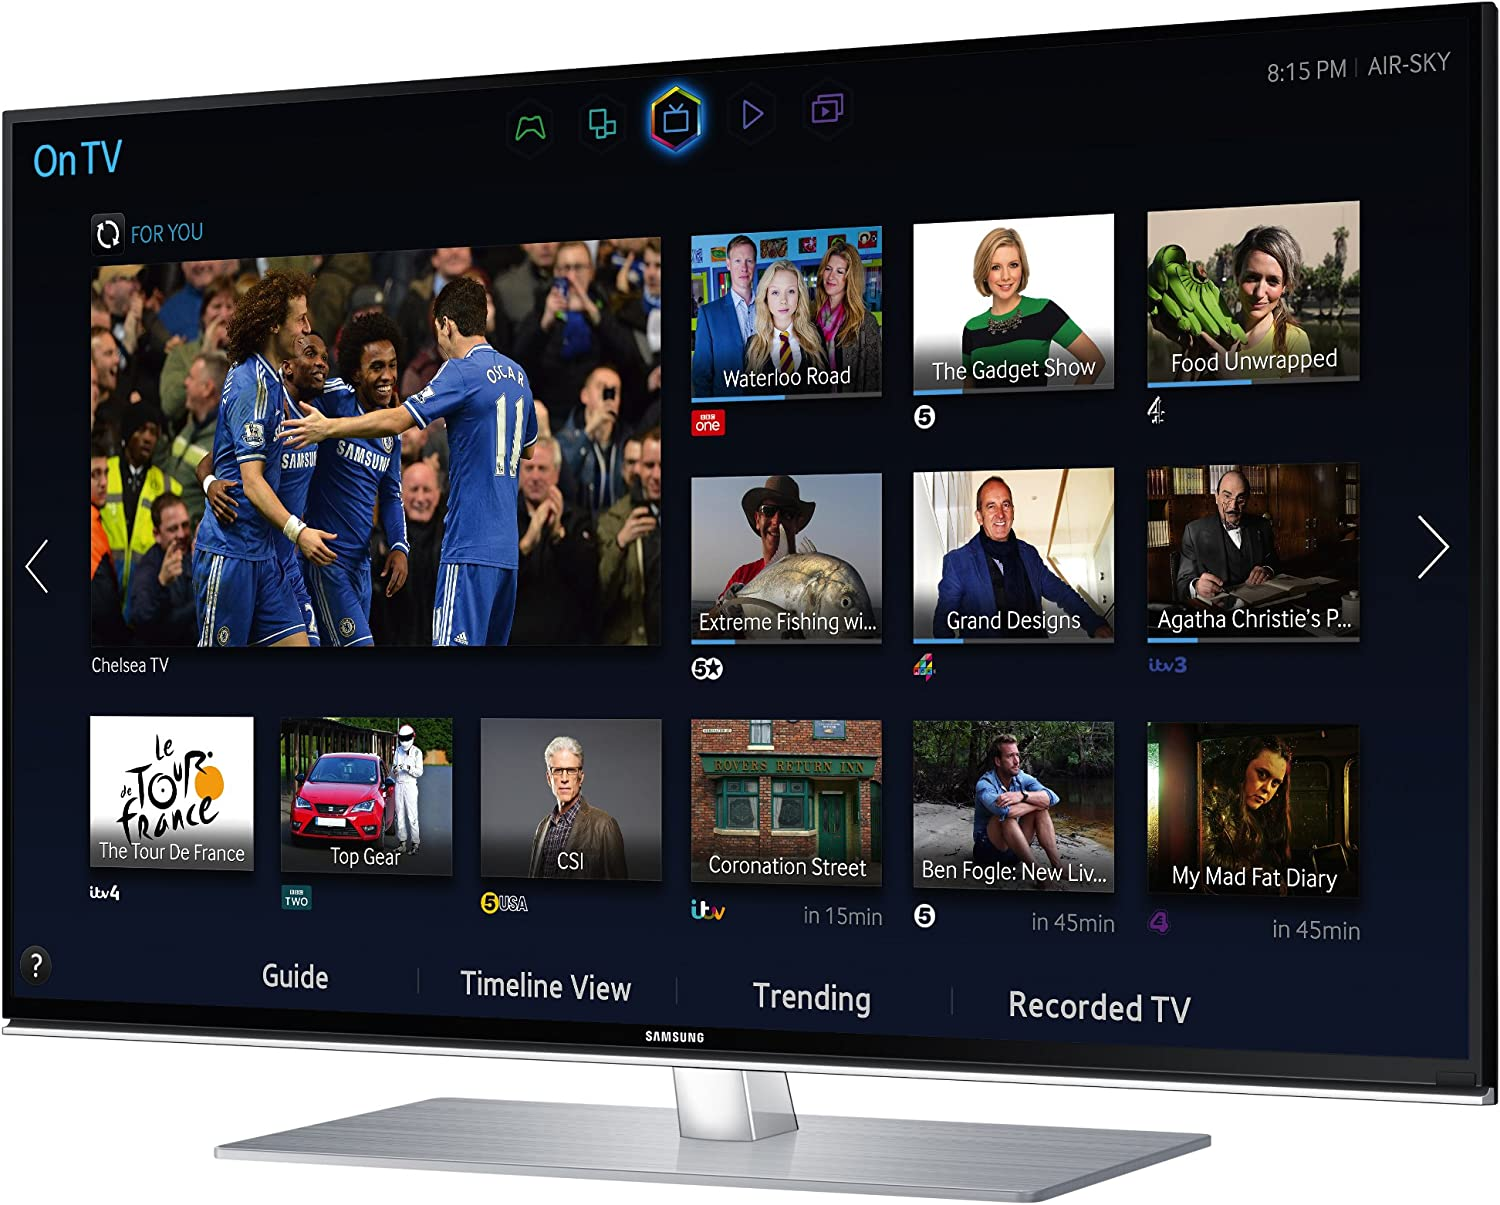 Samsung UE55H6700 55-inch Widescreen Full HD 1080p 3D Slim LED Smart TV with Quad Core Processor and Freeview HD: Amazon.es: Electrónica